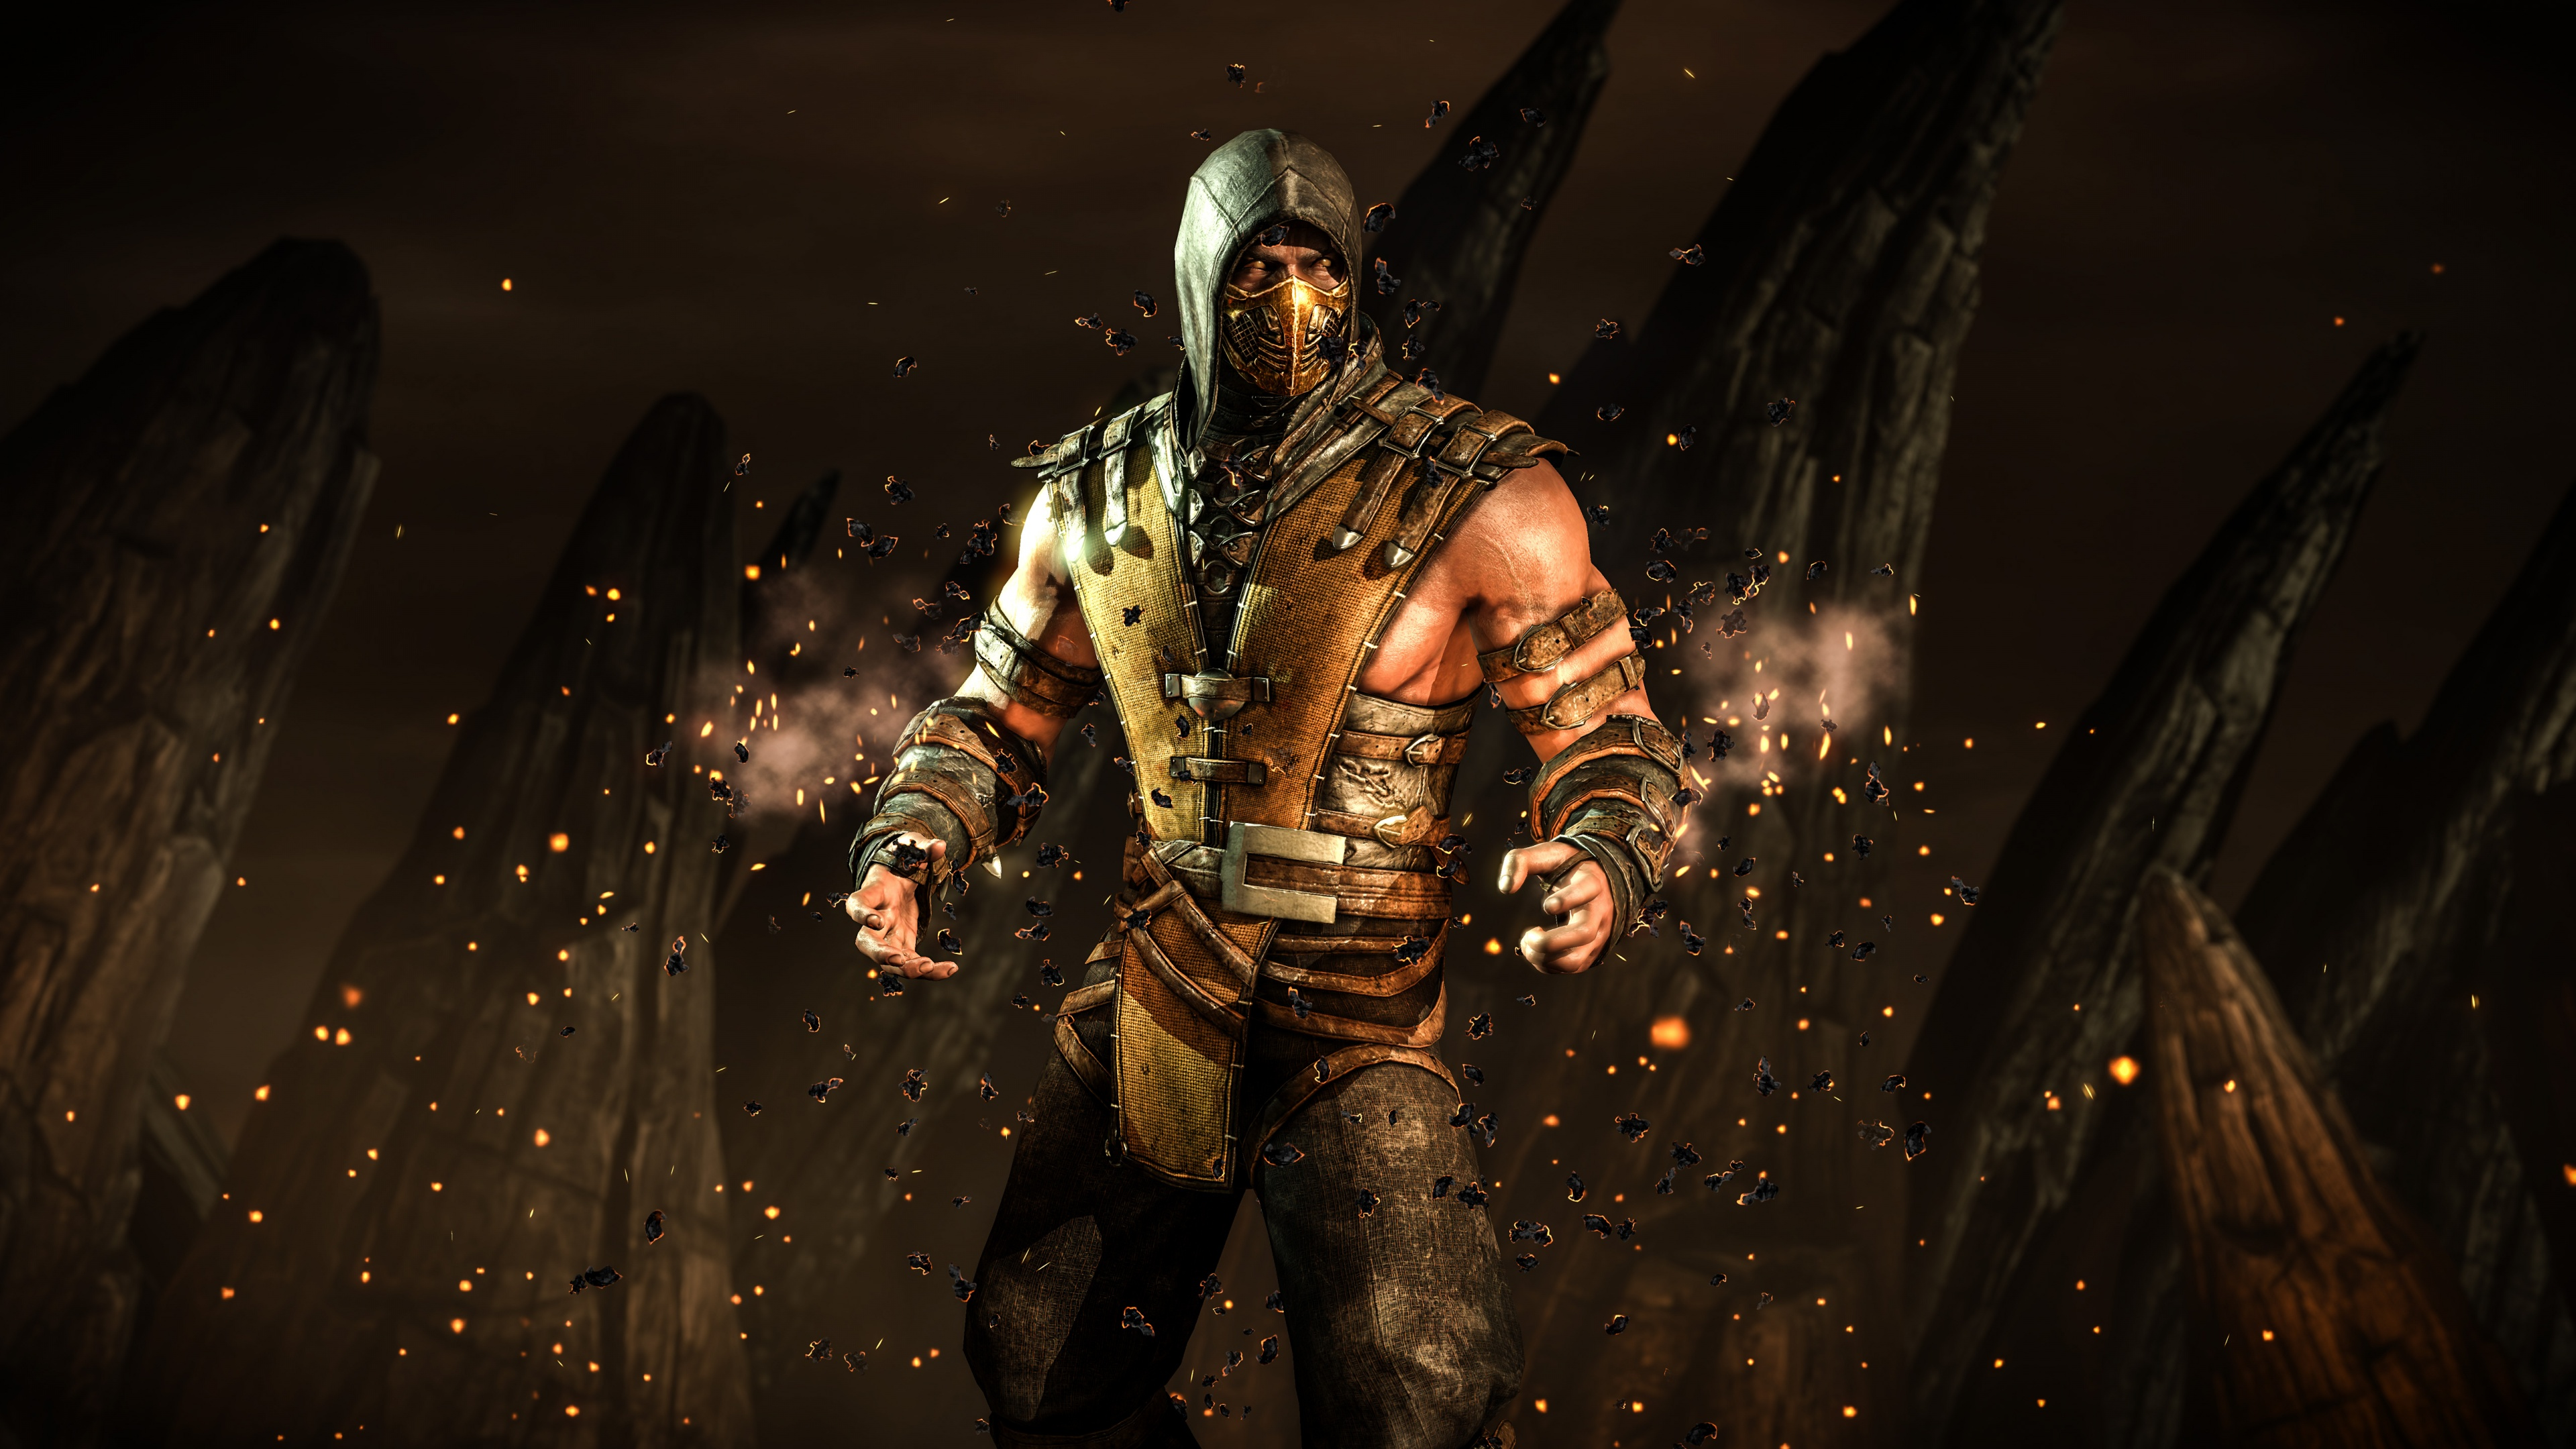 mortal kombat x scorpion hellfire wallpapers in jpg format for free